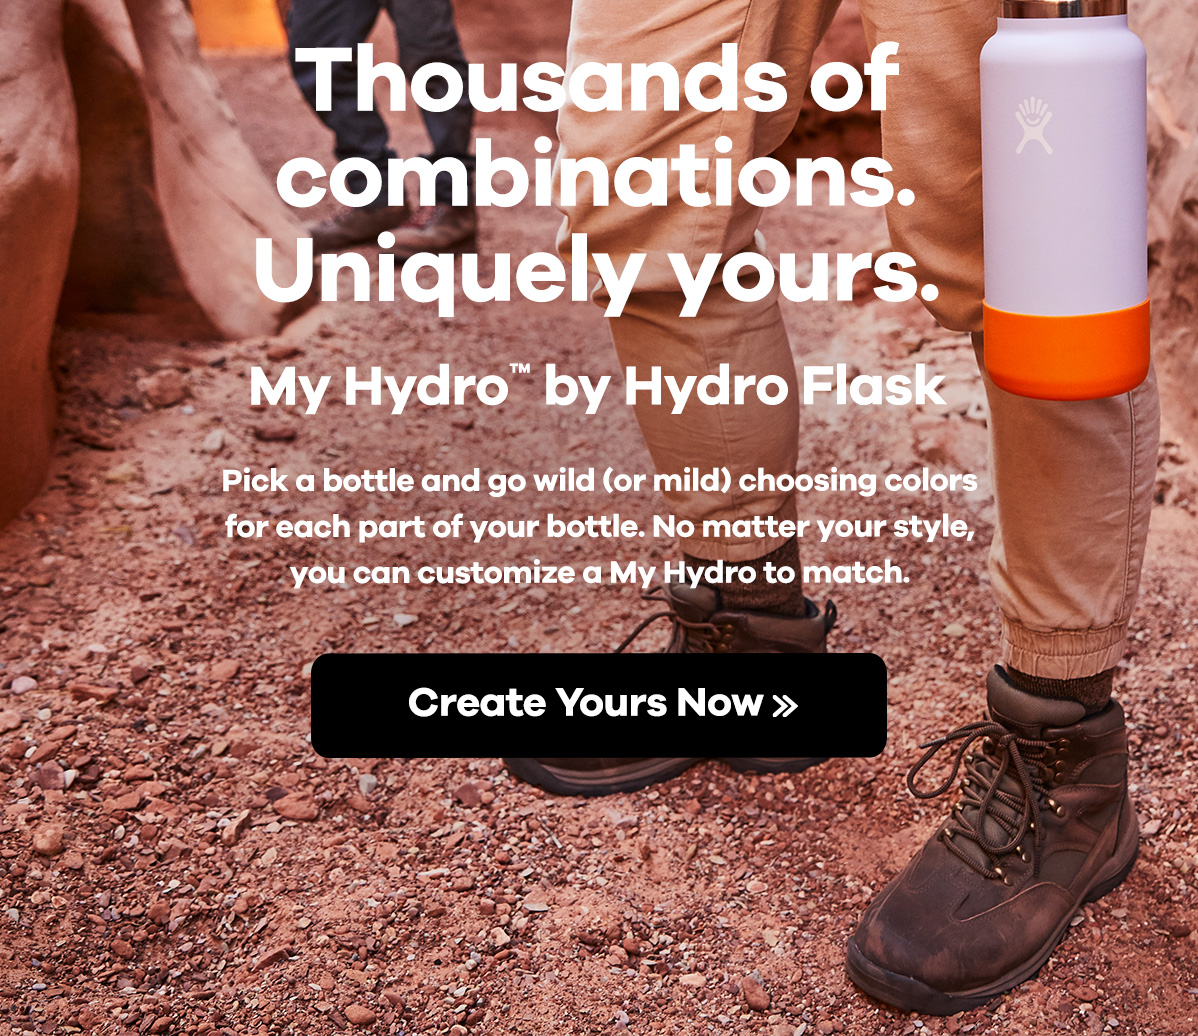 Thousands of combinations. Uniquely yours. My Hydro by Hydro Flask - Pick a bottle and go wild (or wild) choosing colors for each part of your bottl. No matter your style, you can customize a My Hydro to match. | Create Yours Now >>